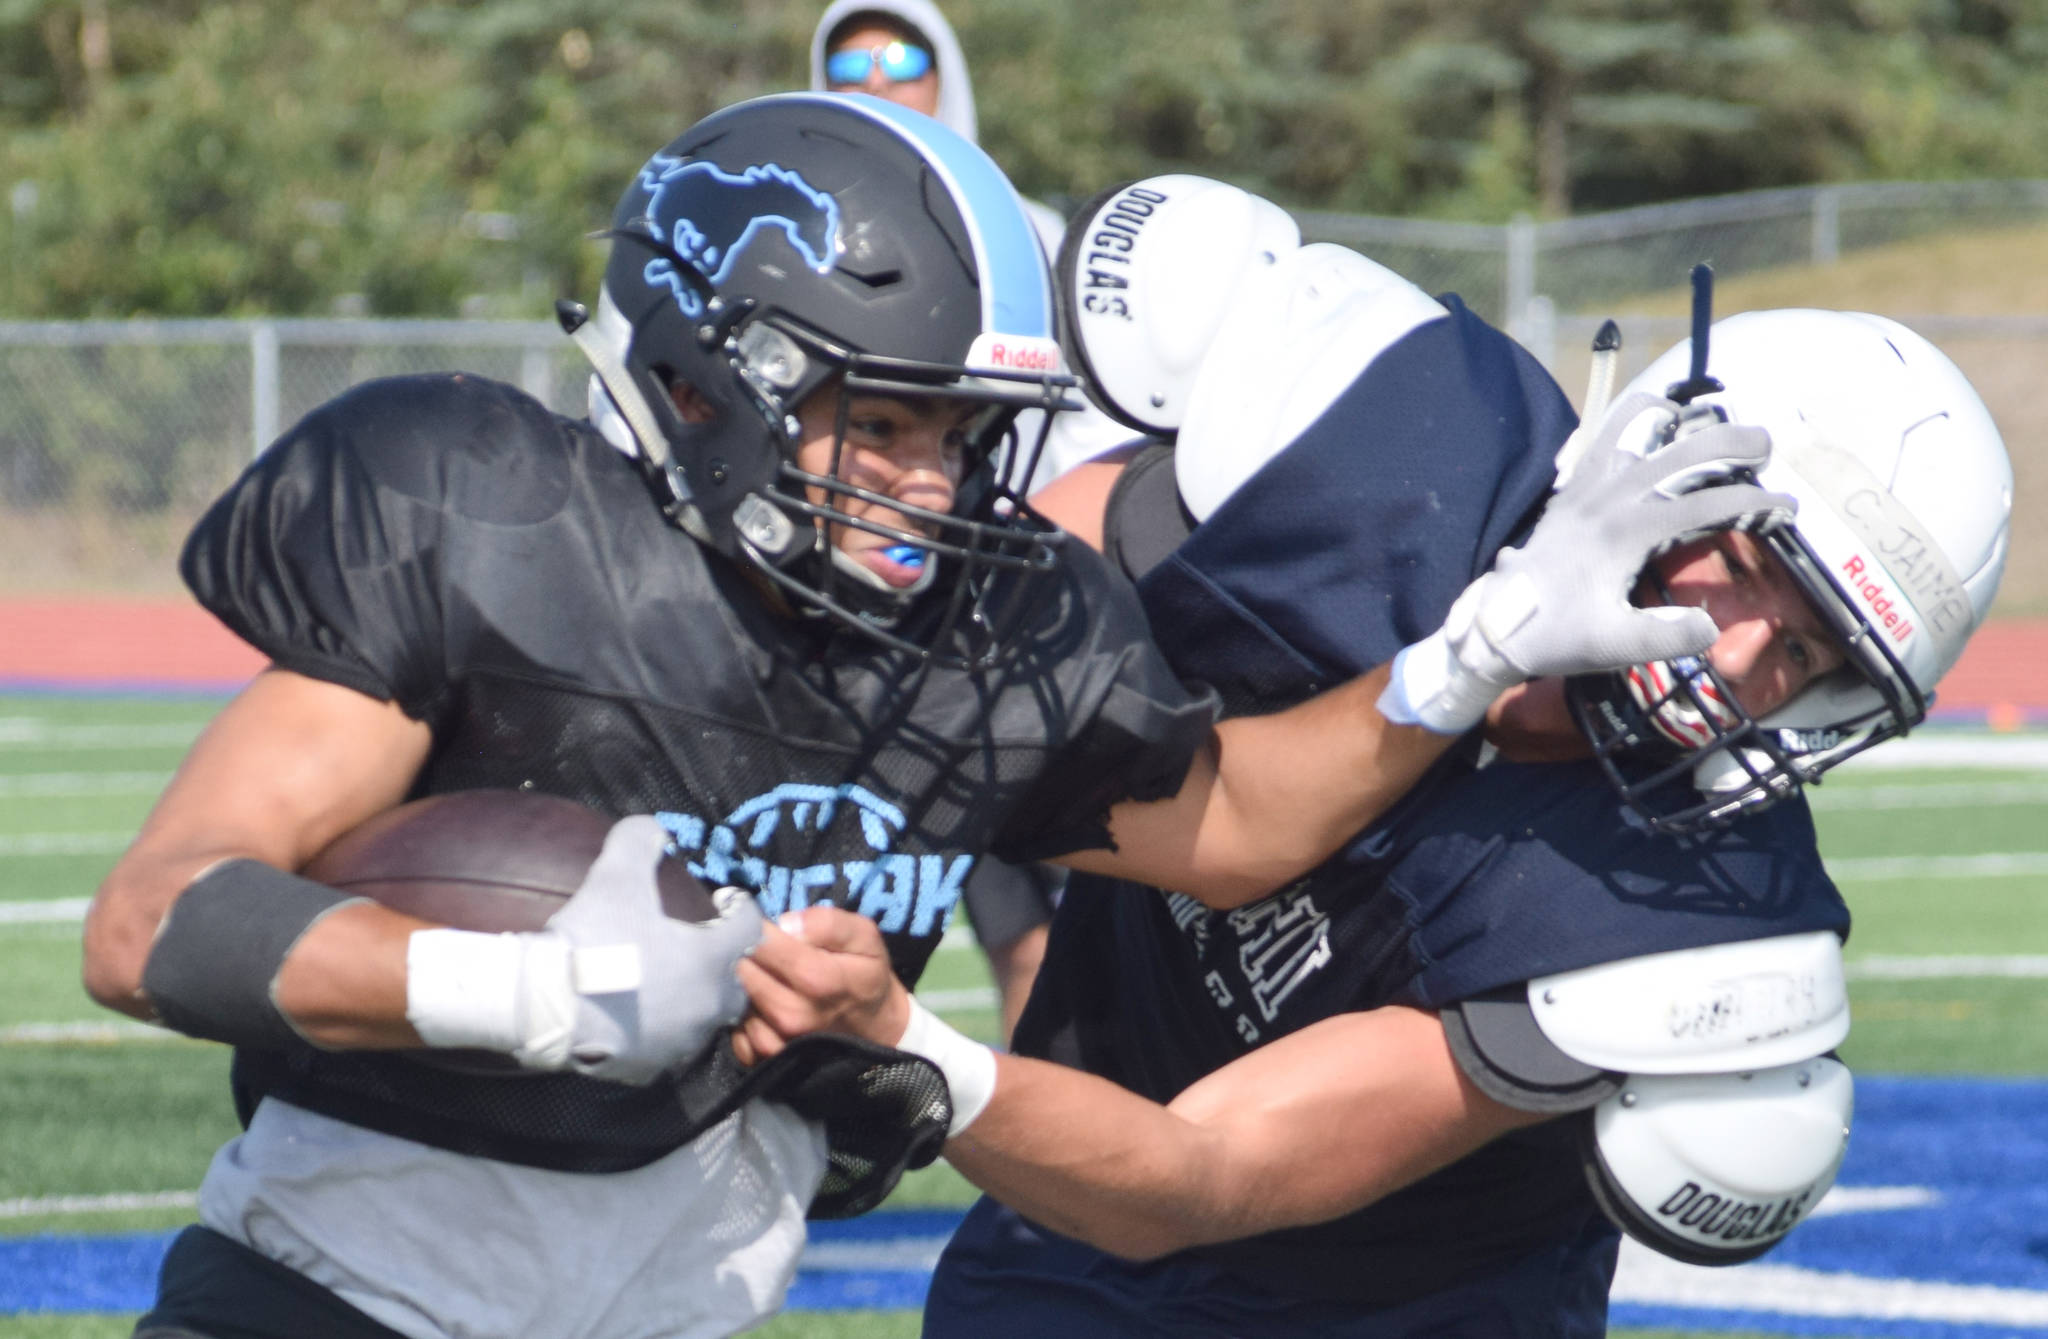 Chugiak's Tyler Huffer stiff-arms Soldotna's Hudson Metcalf during a scrimmage Saturday, Aug. 10, 2019, at Justin Maile Field in Soldotna, Alaska. (Photo by Jeff Helminiak/Peninsula Clarion)